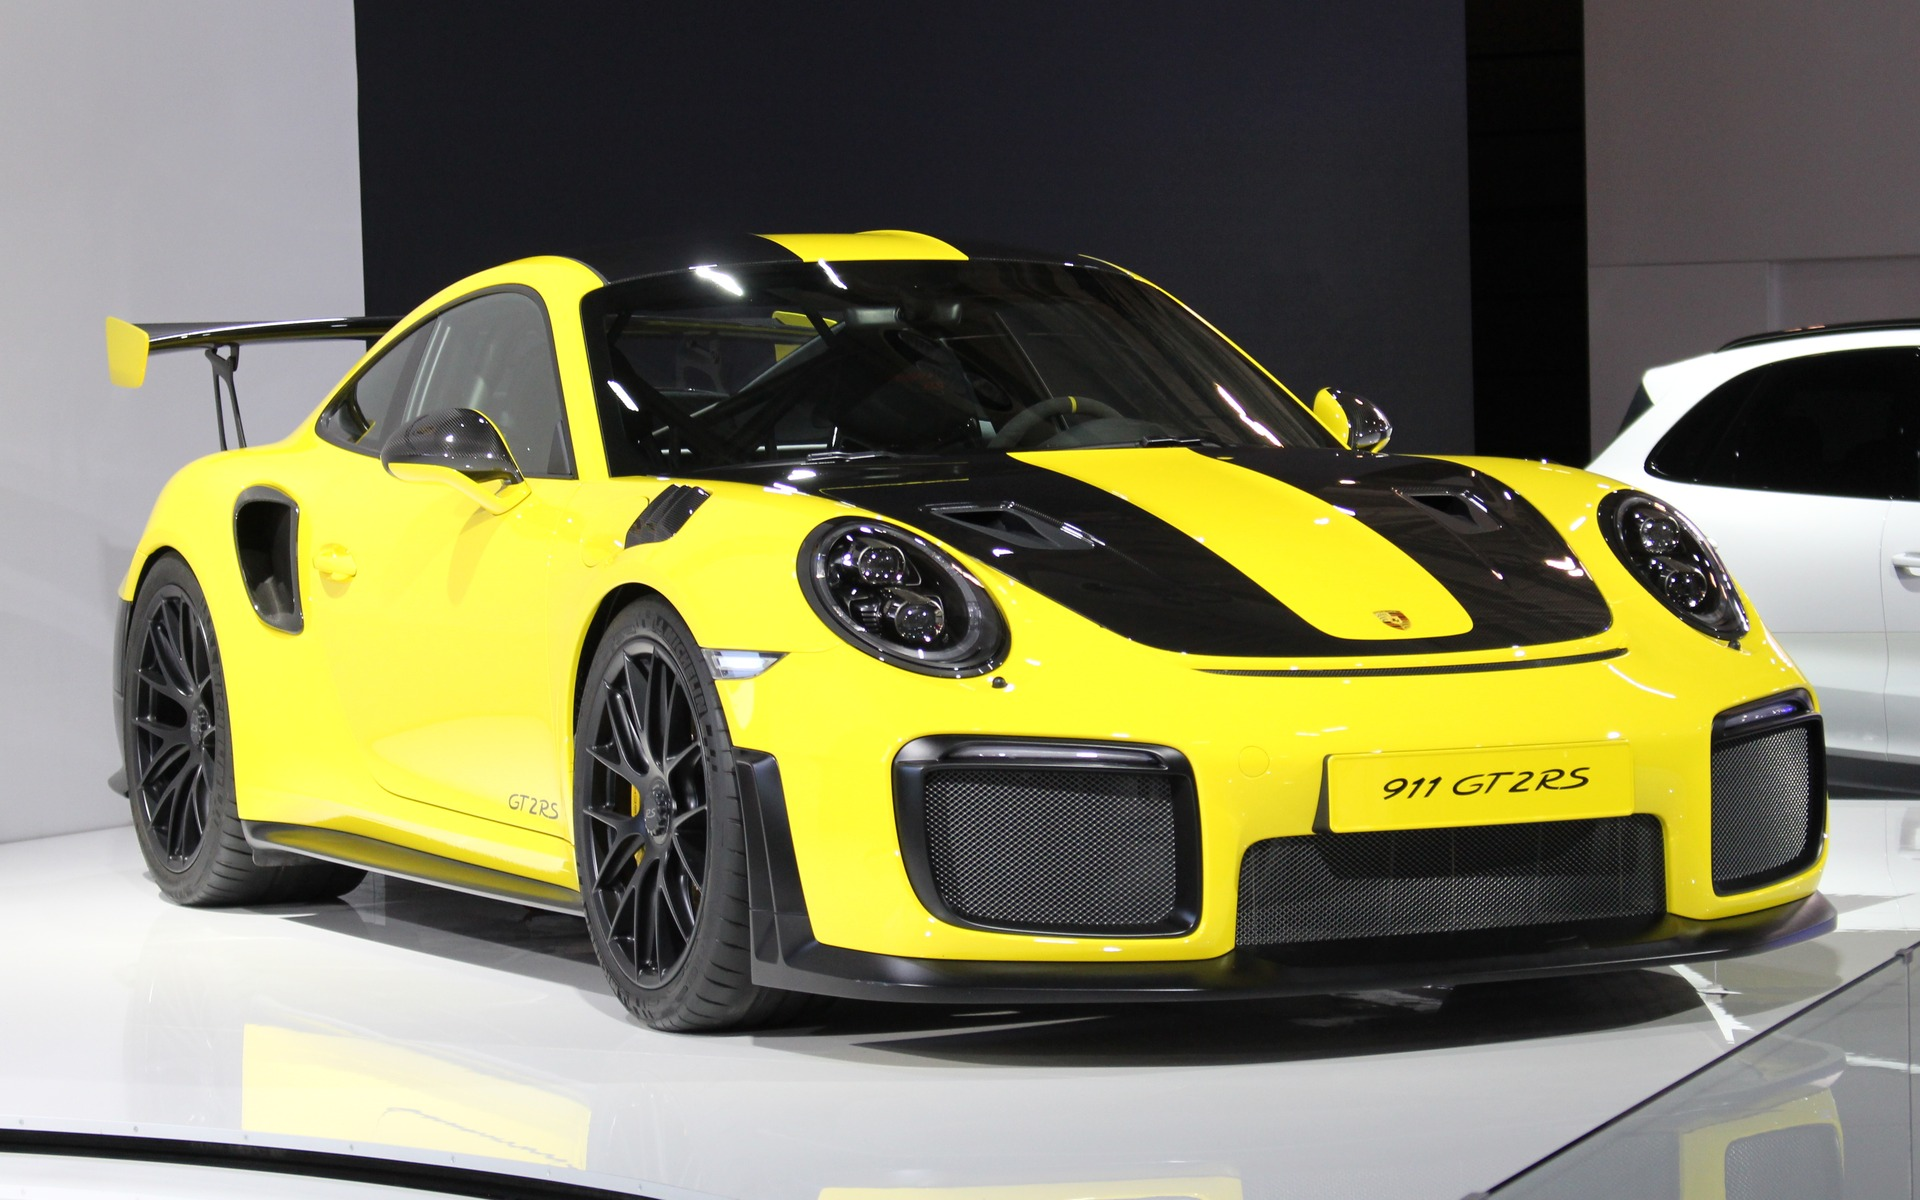 la porsche 911 gt2 rs 2018 pr sent e toronto guide auto. Black Bedroom Furniture Sets. Home Design Ideas